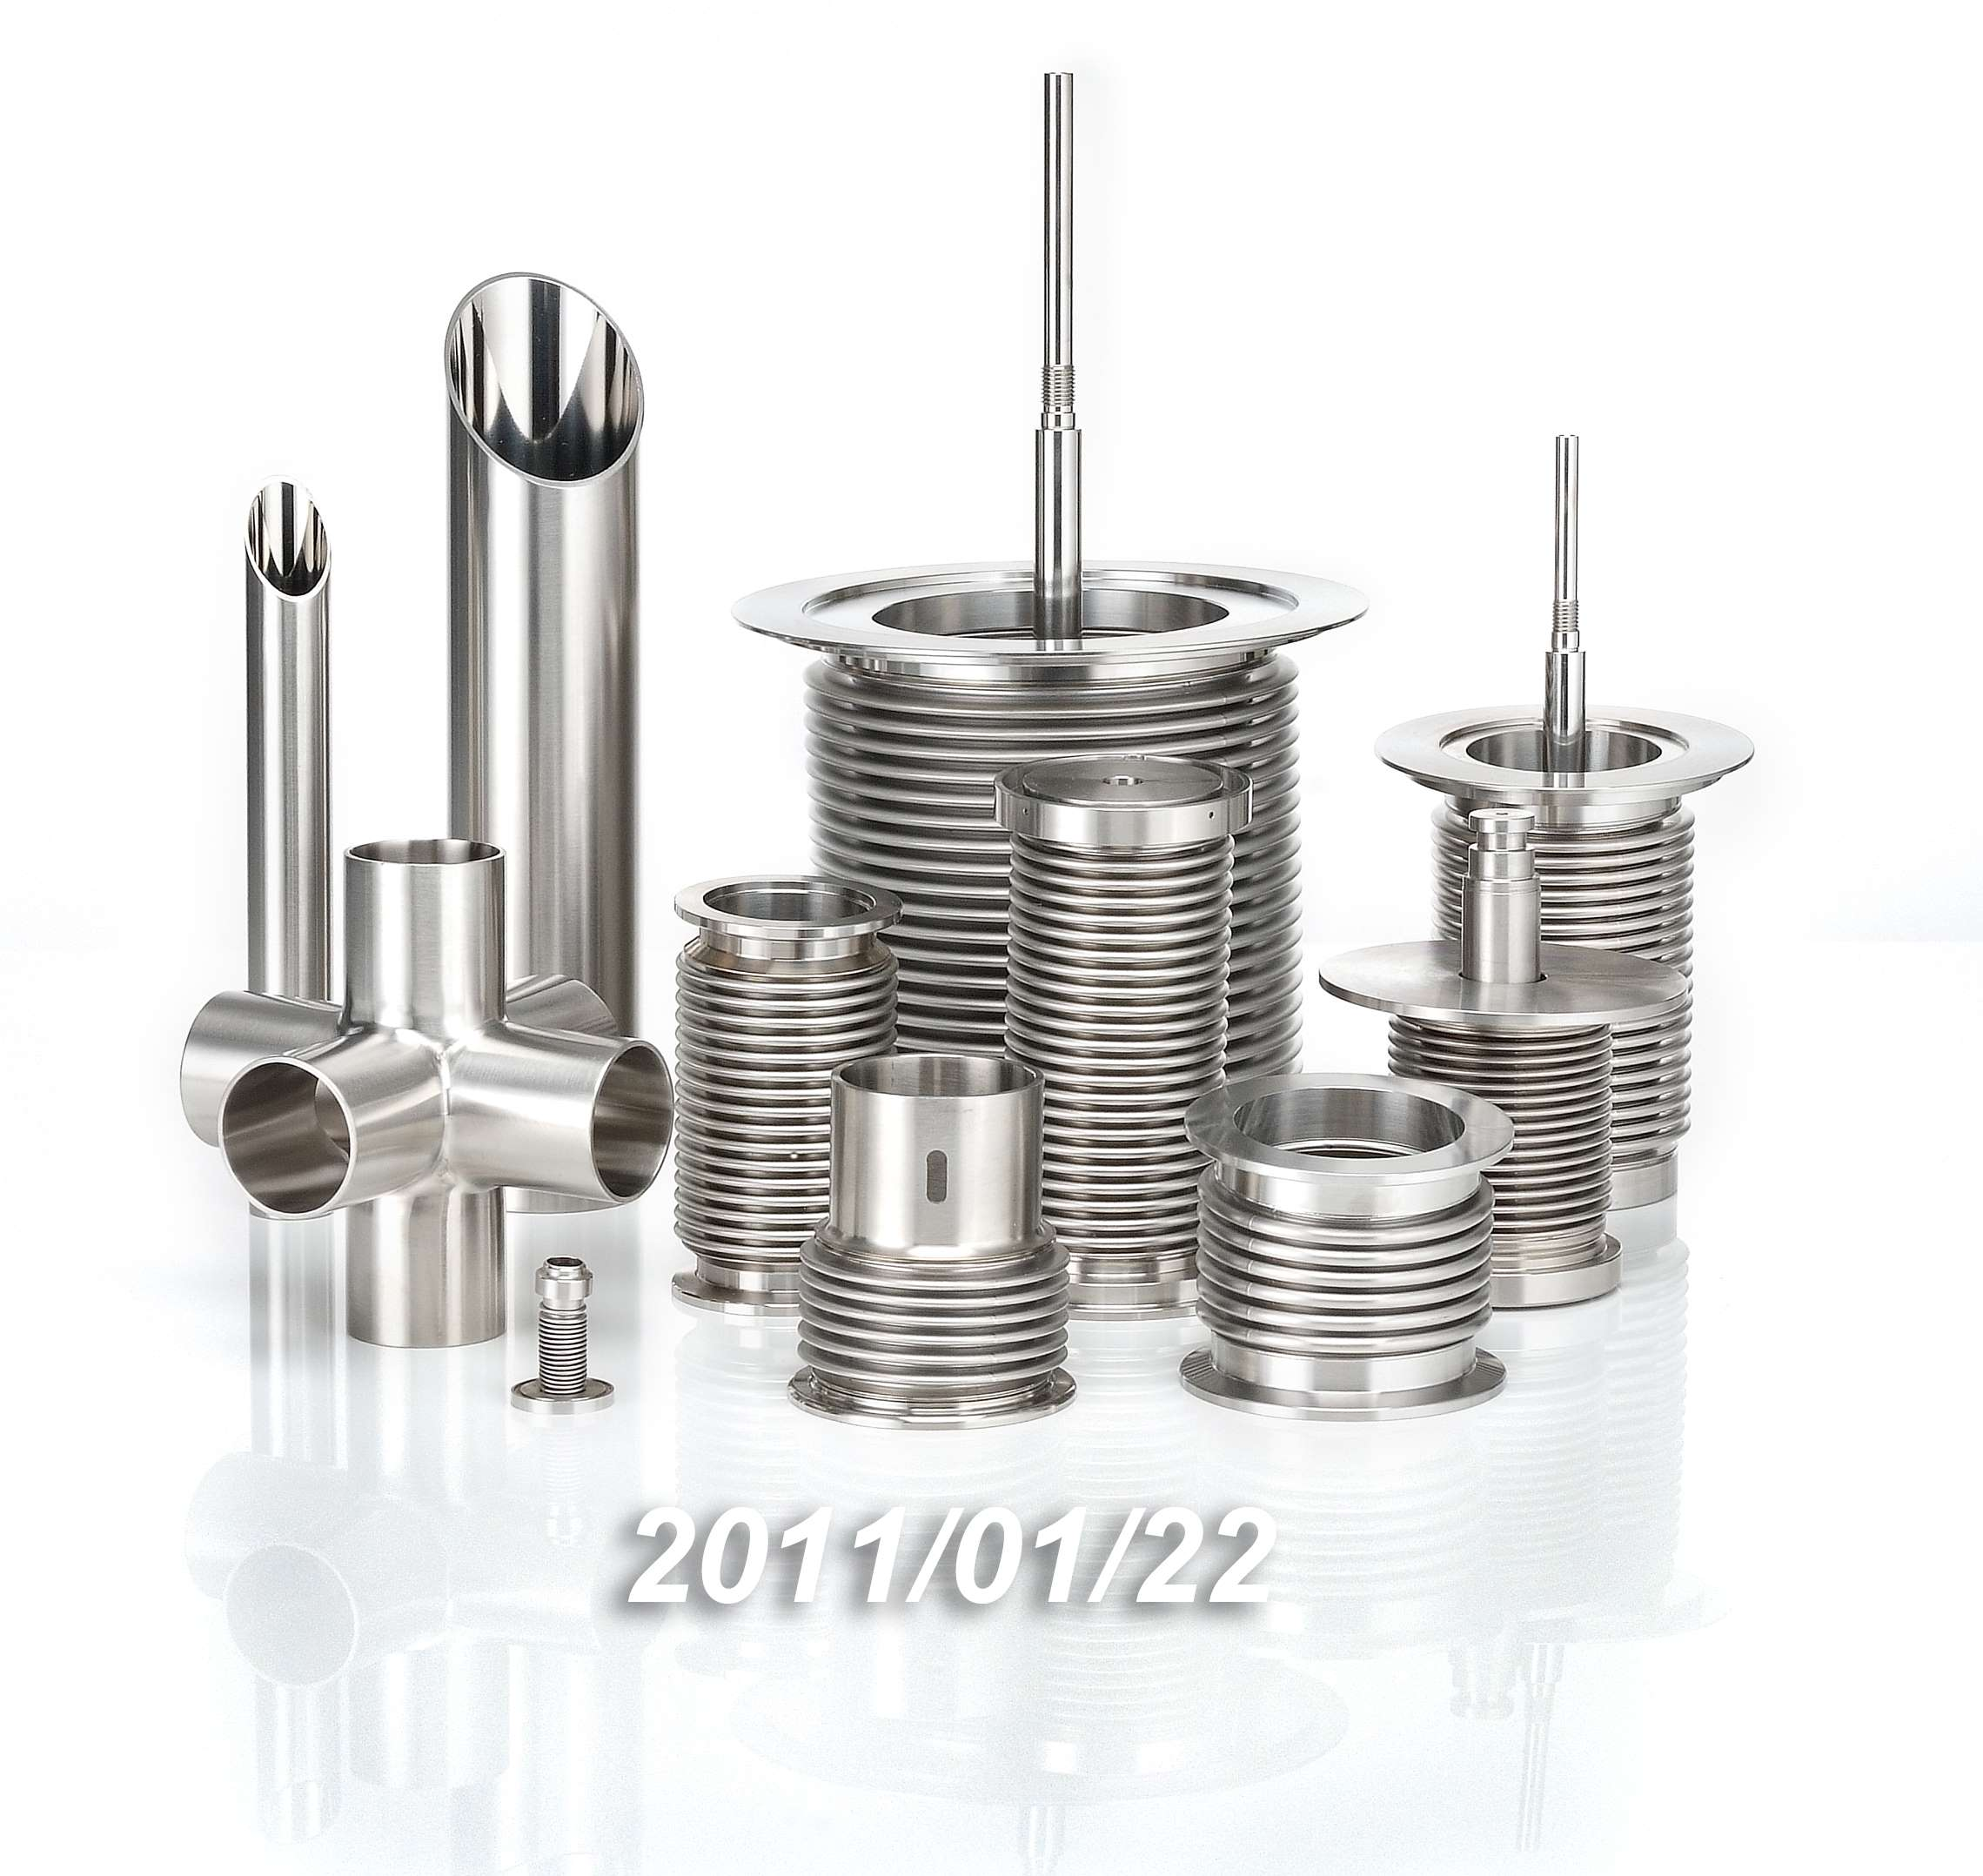 Qualified Disc Coupling Manufacturer and Supplier